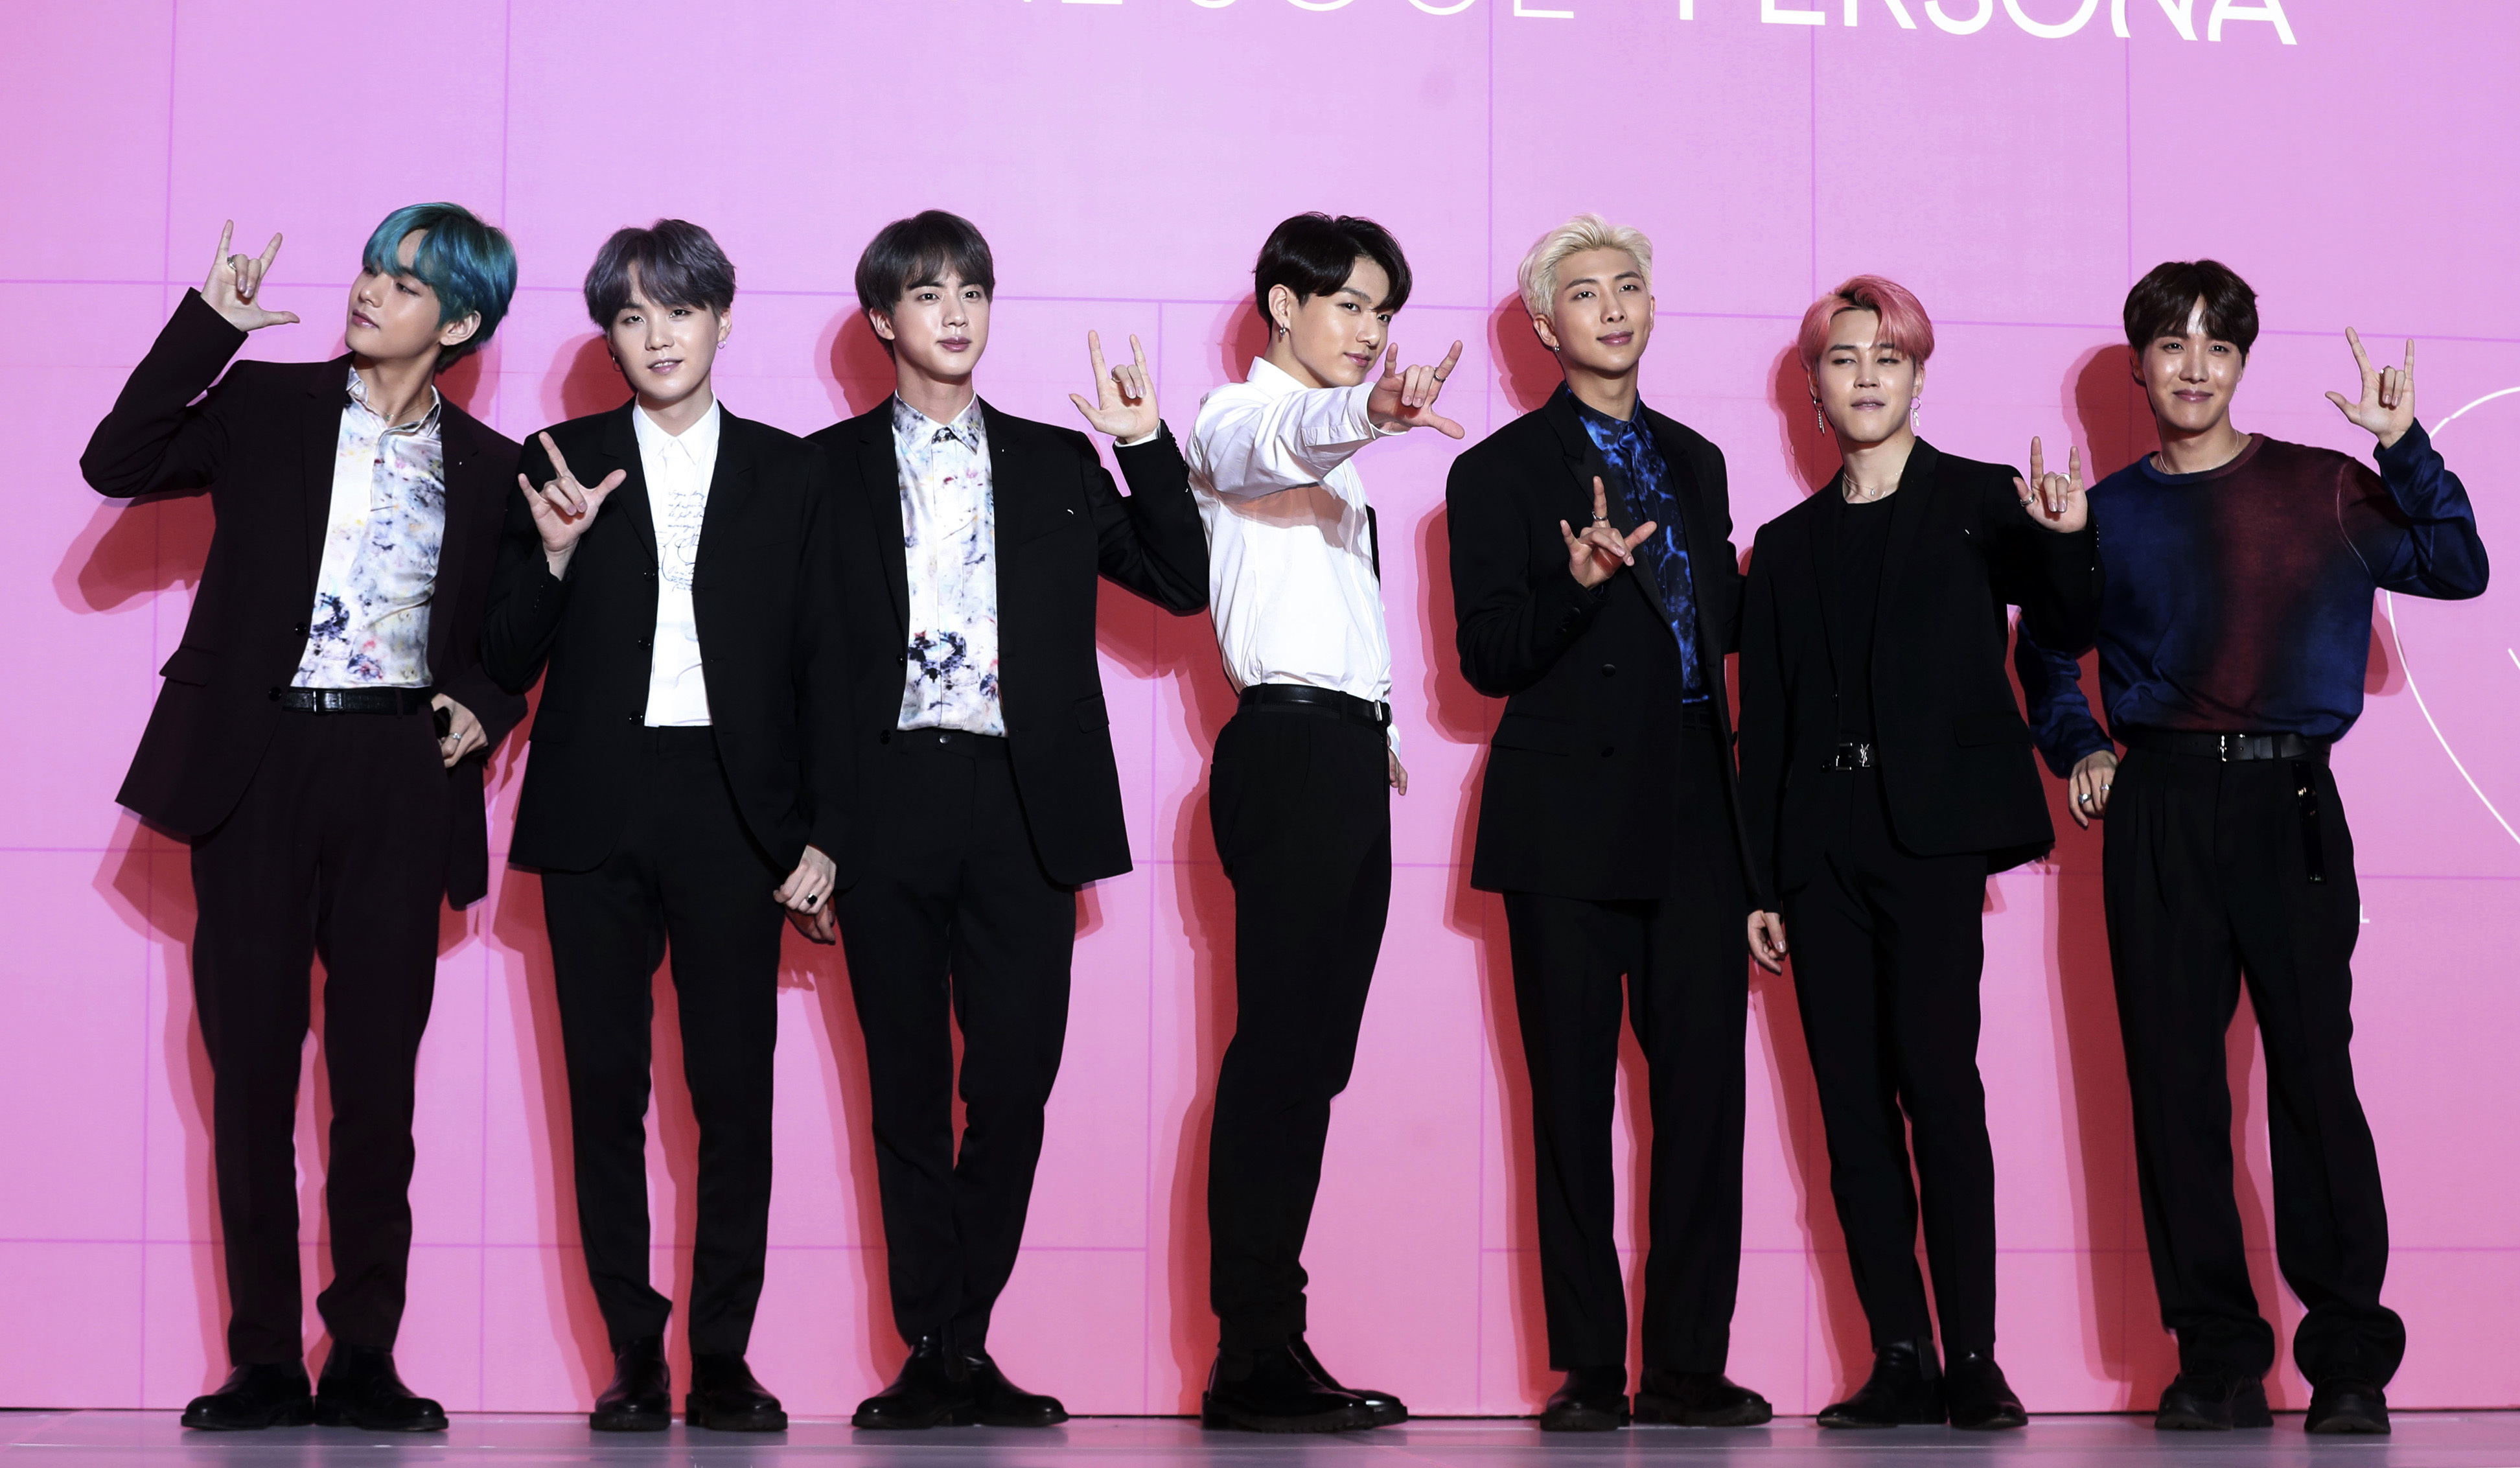 Members of South Korean K-Pop group BTS appear during a press conference in Seoul, South Korea, on April 17, 2019.